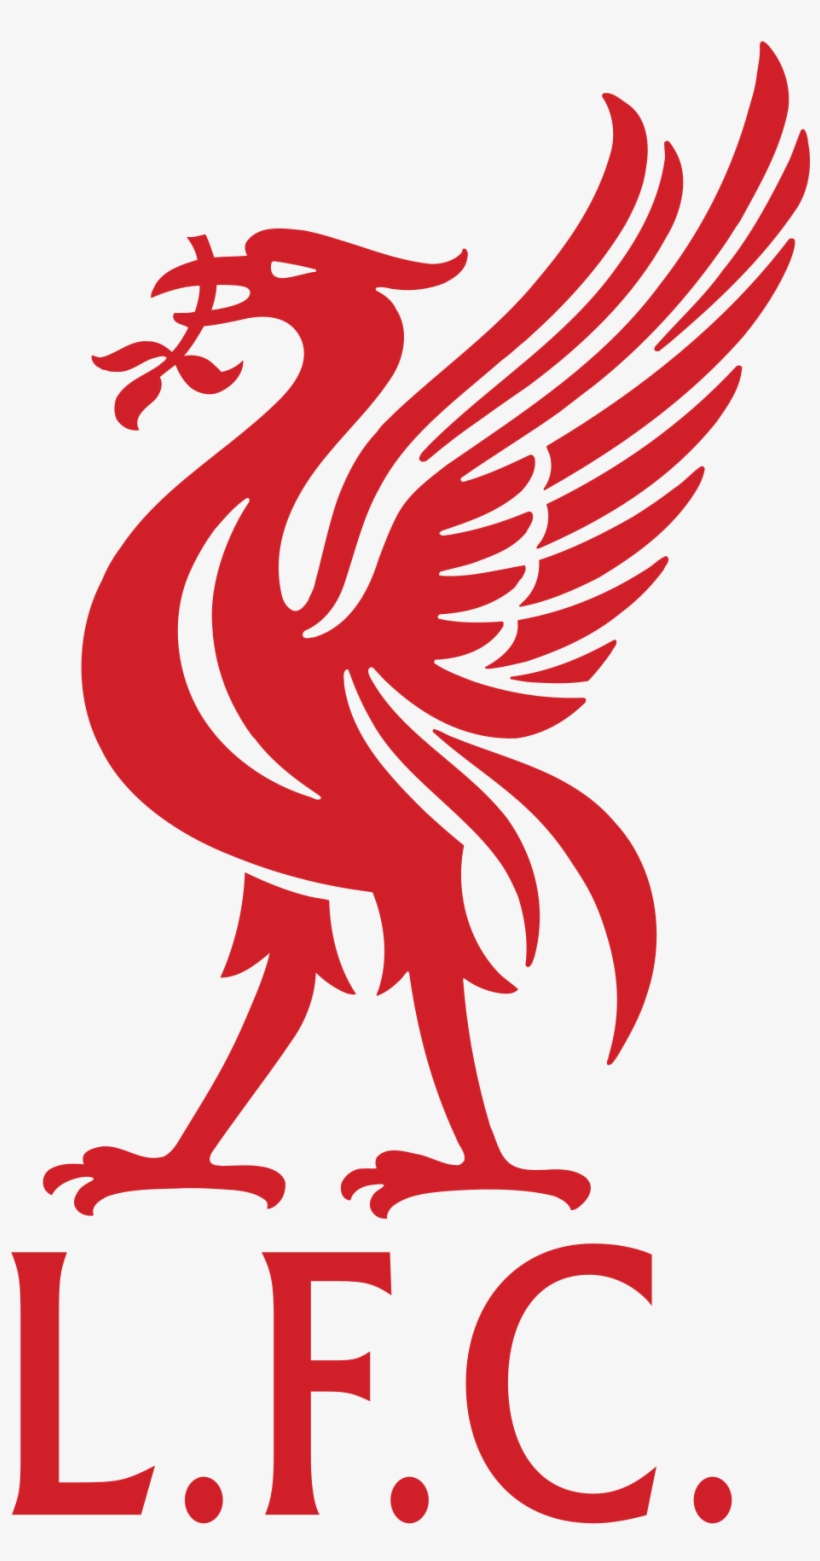 Liverpool Football Club Liverpool Fc Logo Png Image Transparent Png Free Download On Seekpng